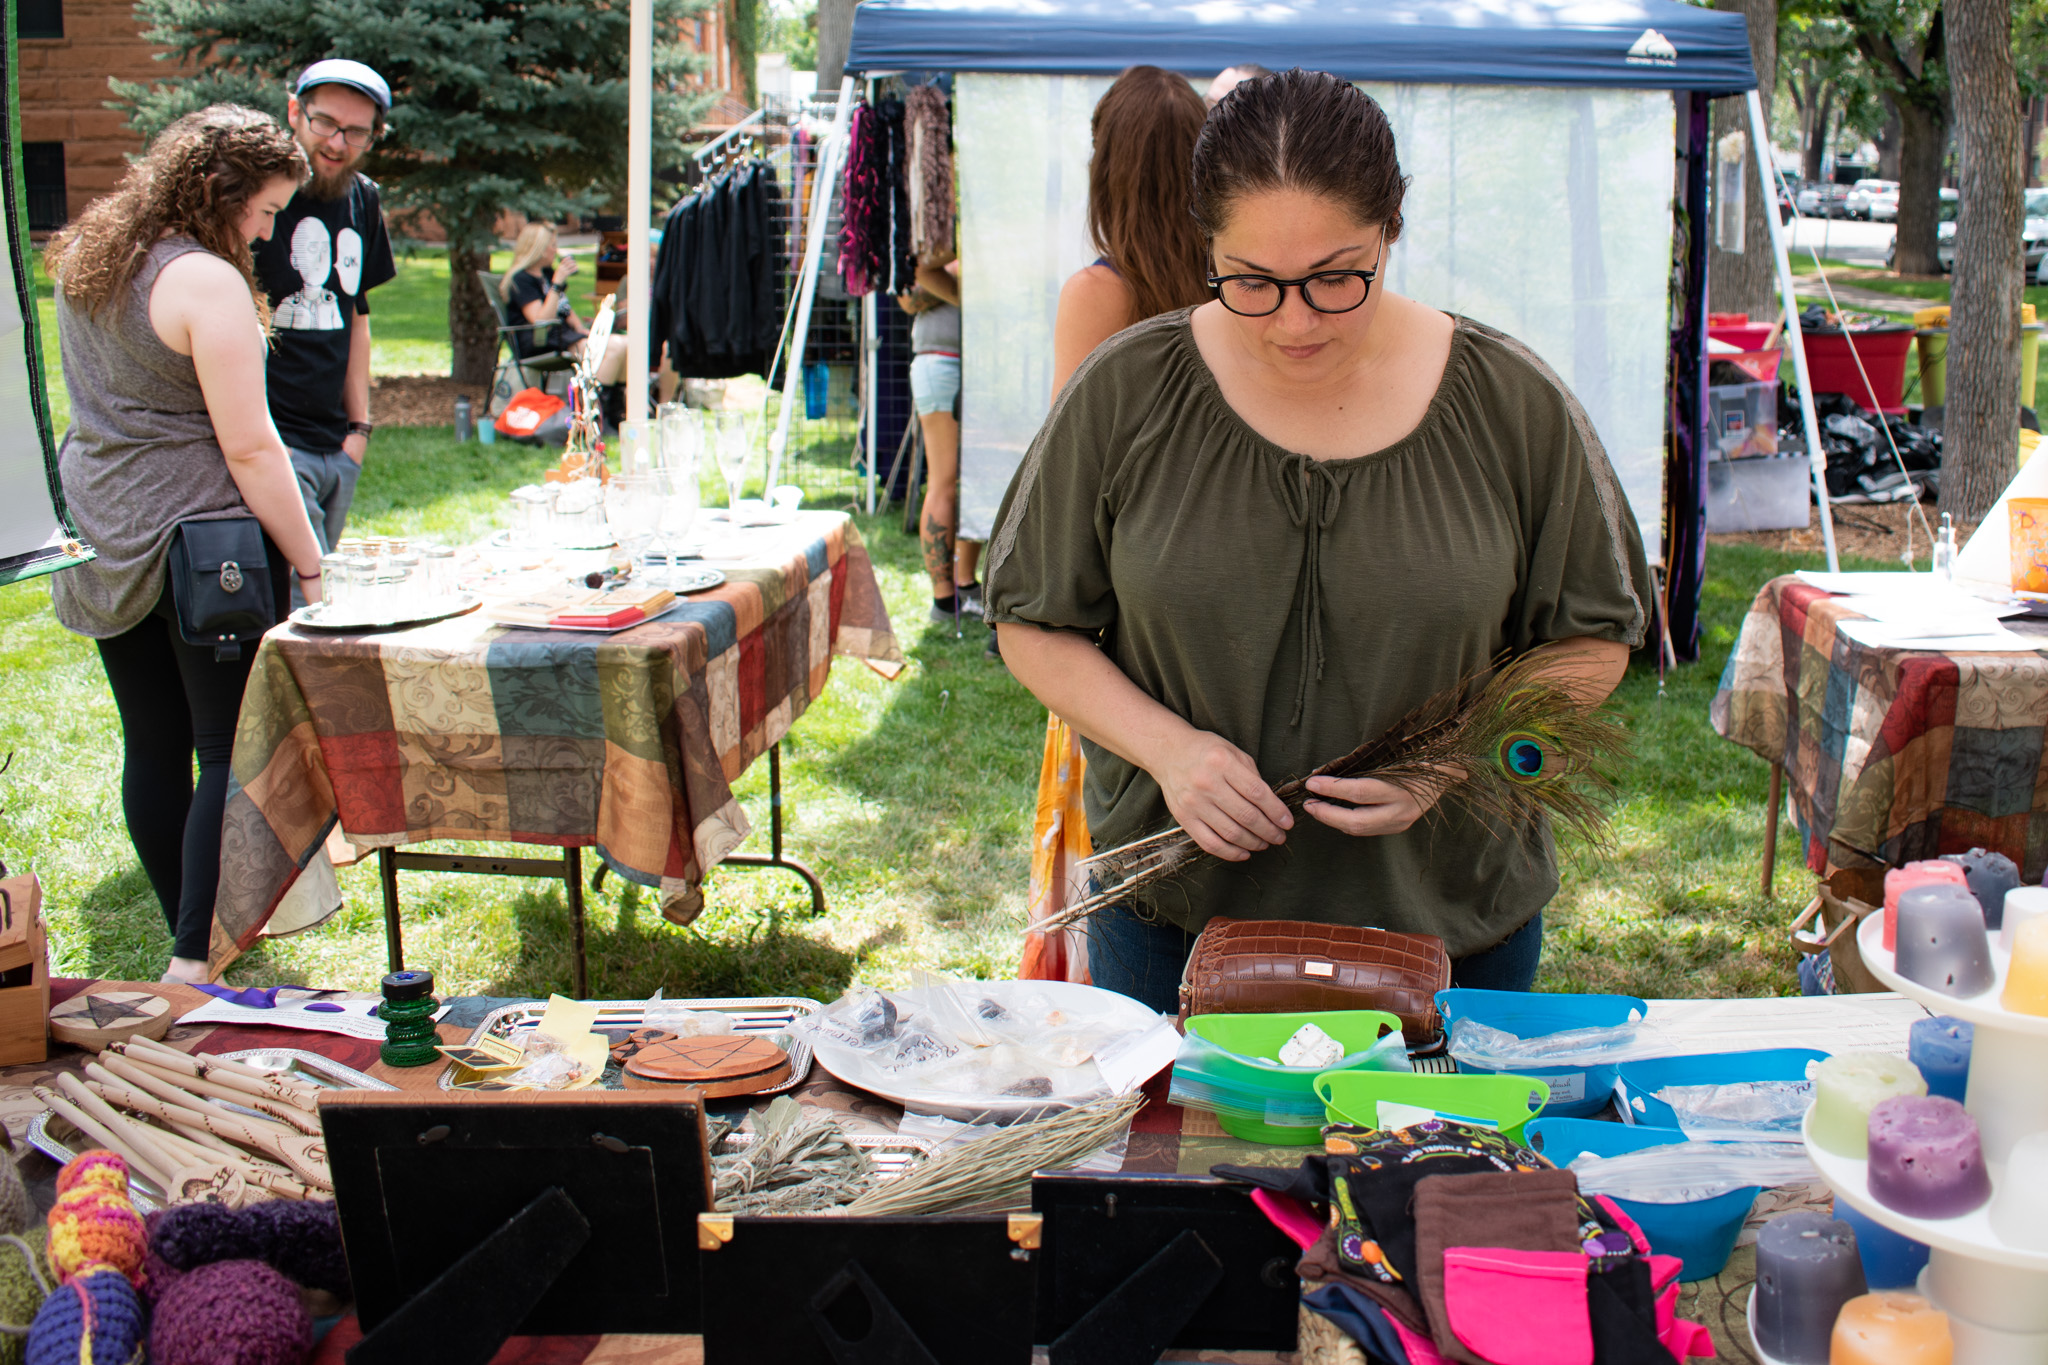 Fort Collins Pagan Pride Day celebrates diversity and